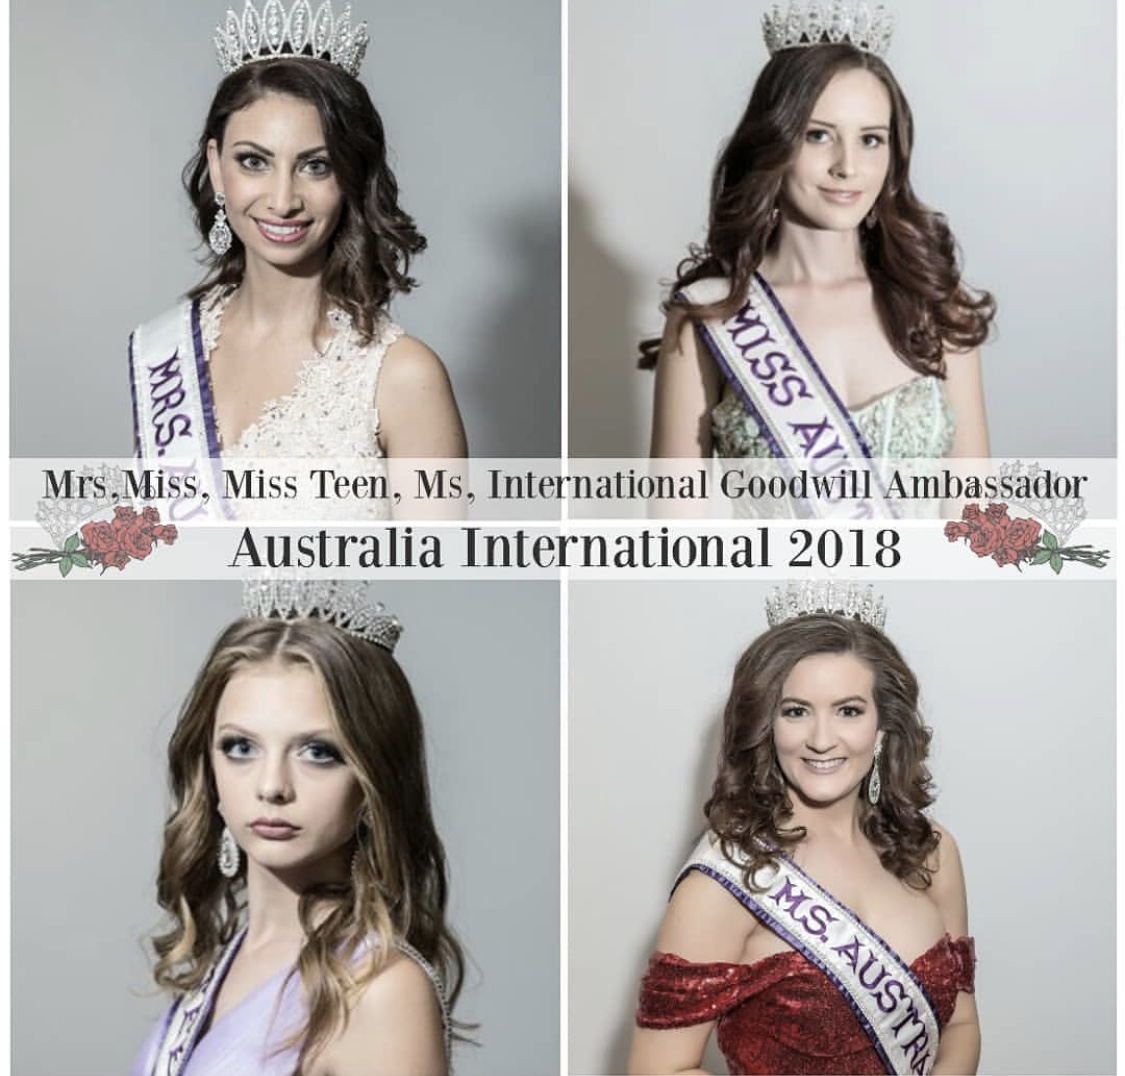 Mrs, Ms, Miss & Miss Teen Australia International